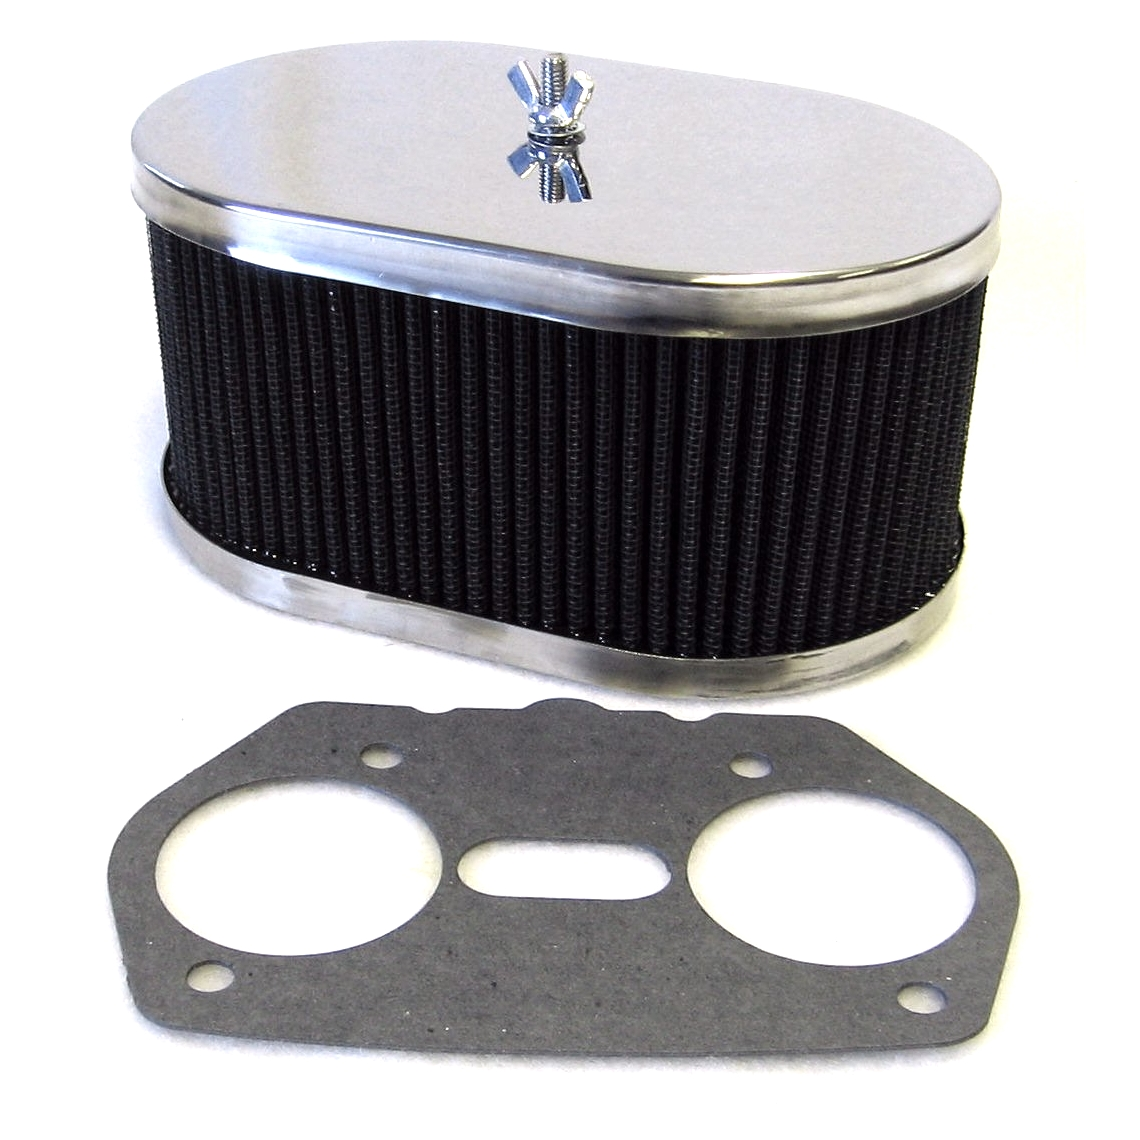 WEBER IDF/DELLORTO DRLA 36/40/44/45/48 CARBURETTOR 1x AIR FILTER KIT